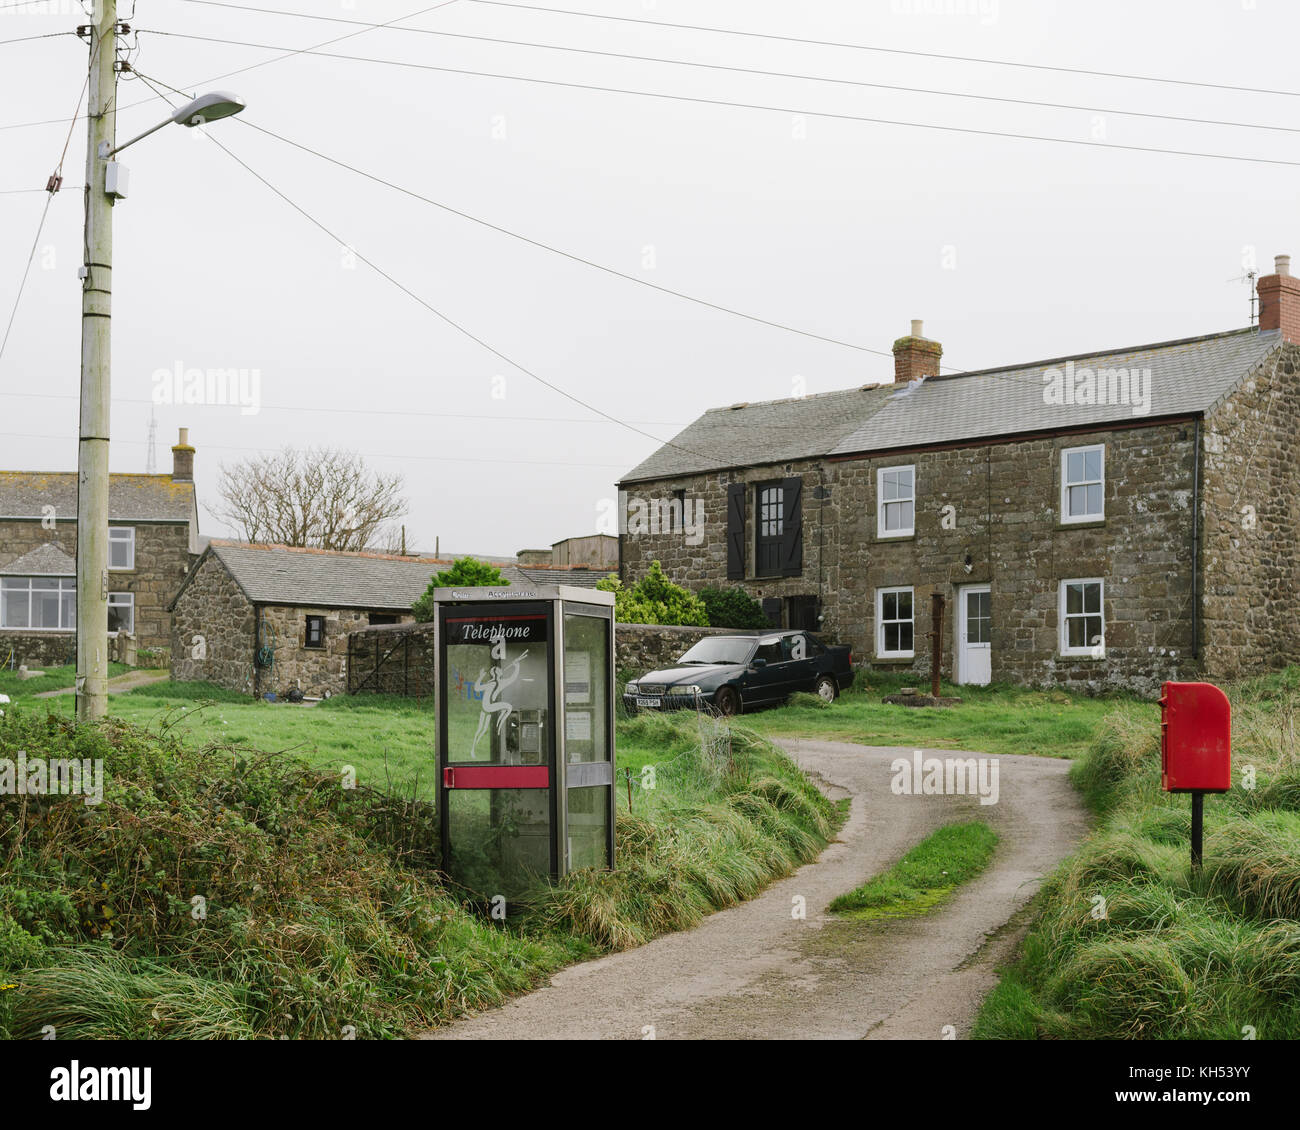 A traditional British Phone Box in Cornwall - Stock Image